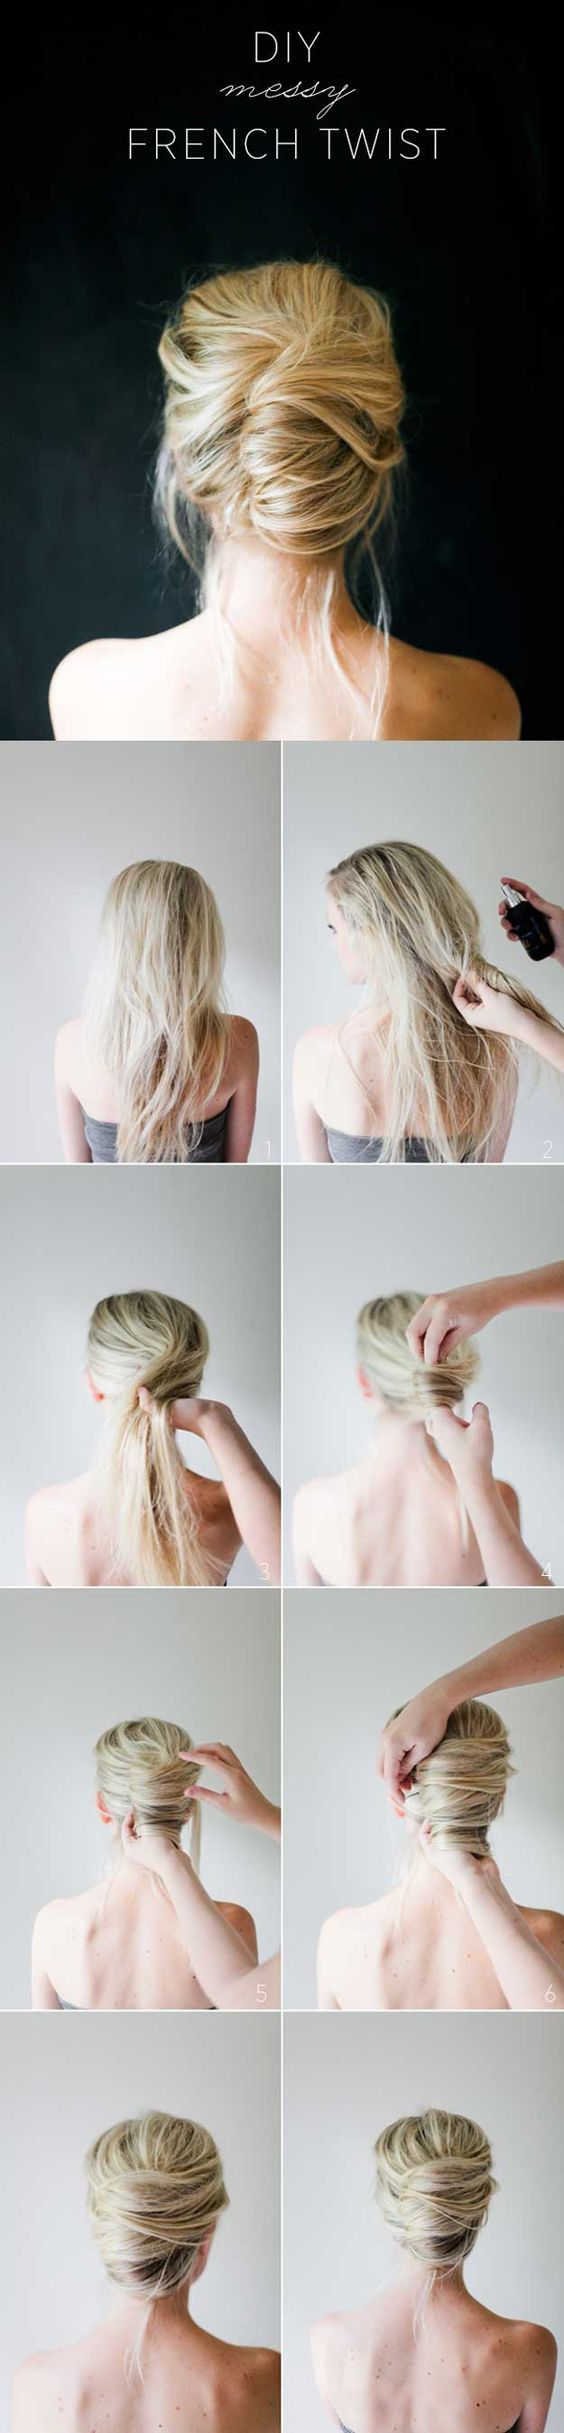 Pin by Kristen Osborn on hair | Pinterest | Short haircuts, Haircuts ...